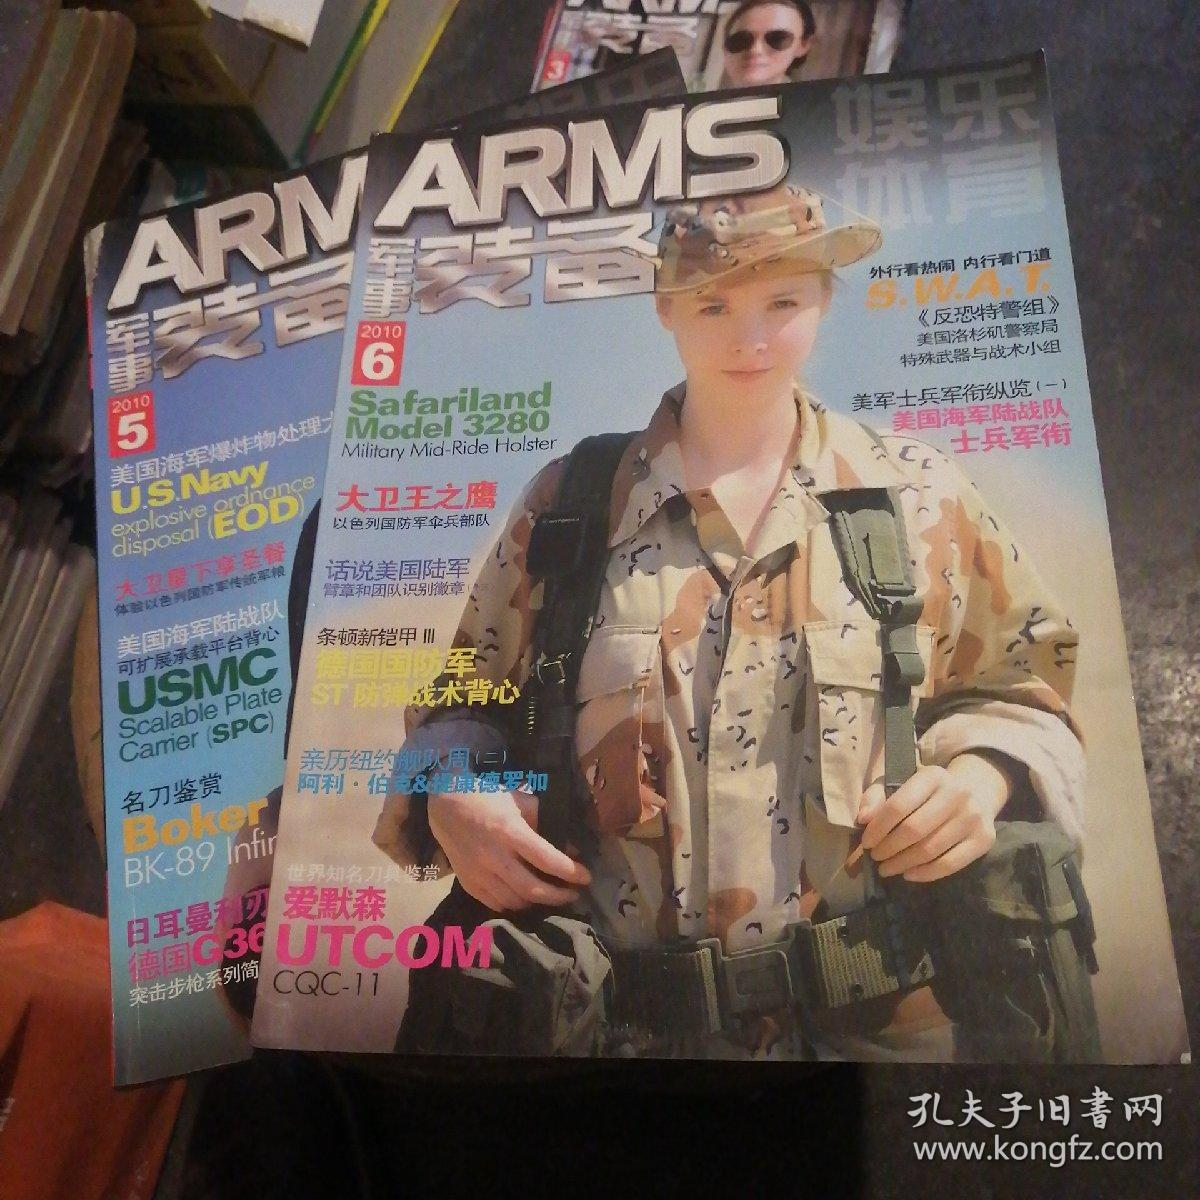 arms装备2010第5:6期